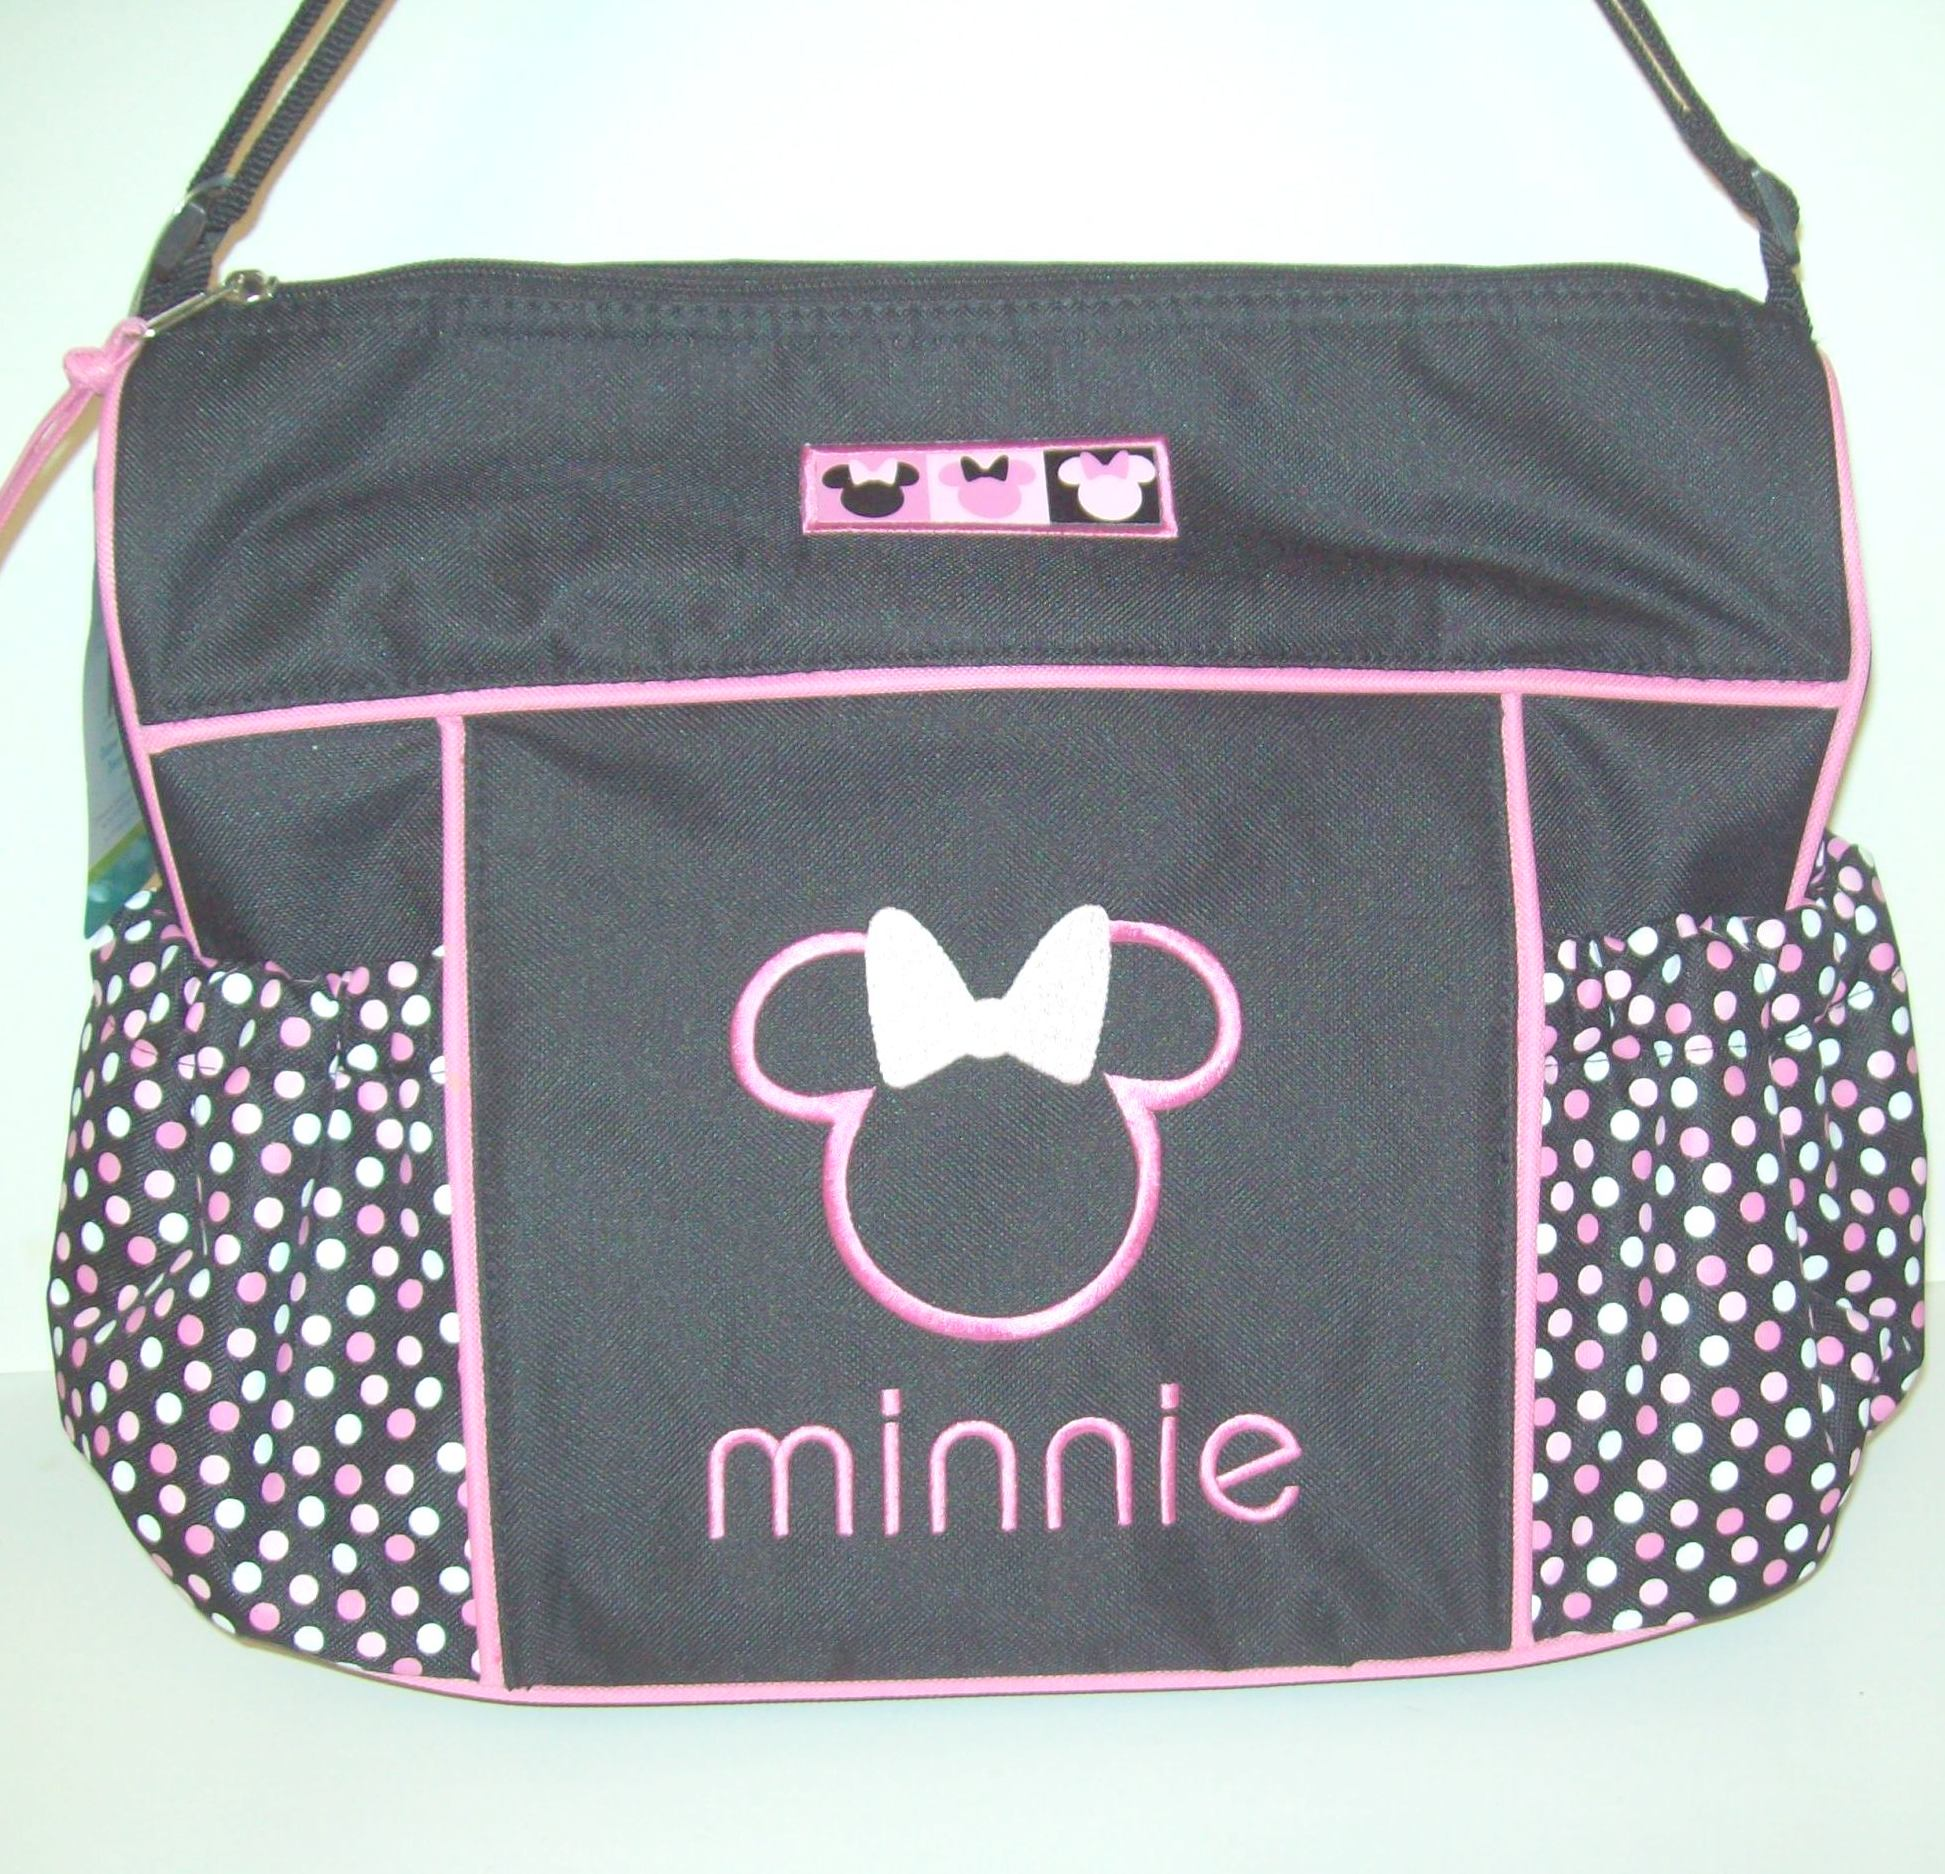 Best Minnie Mouse Bag Design